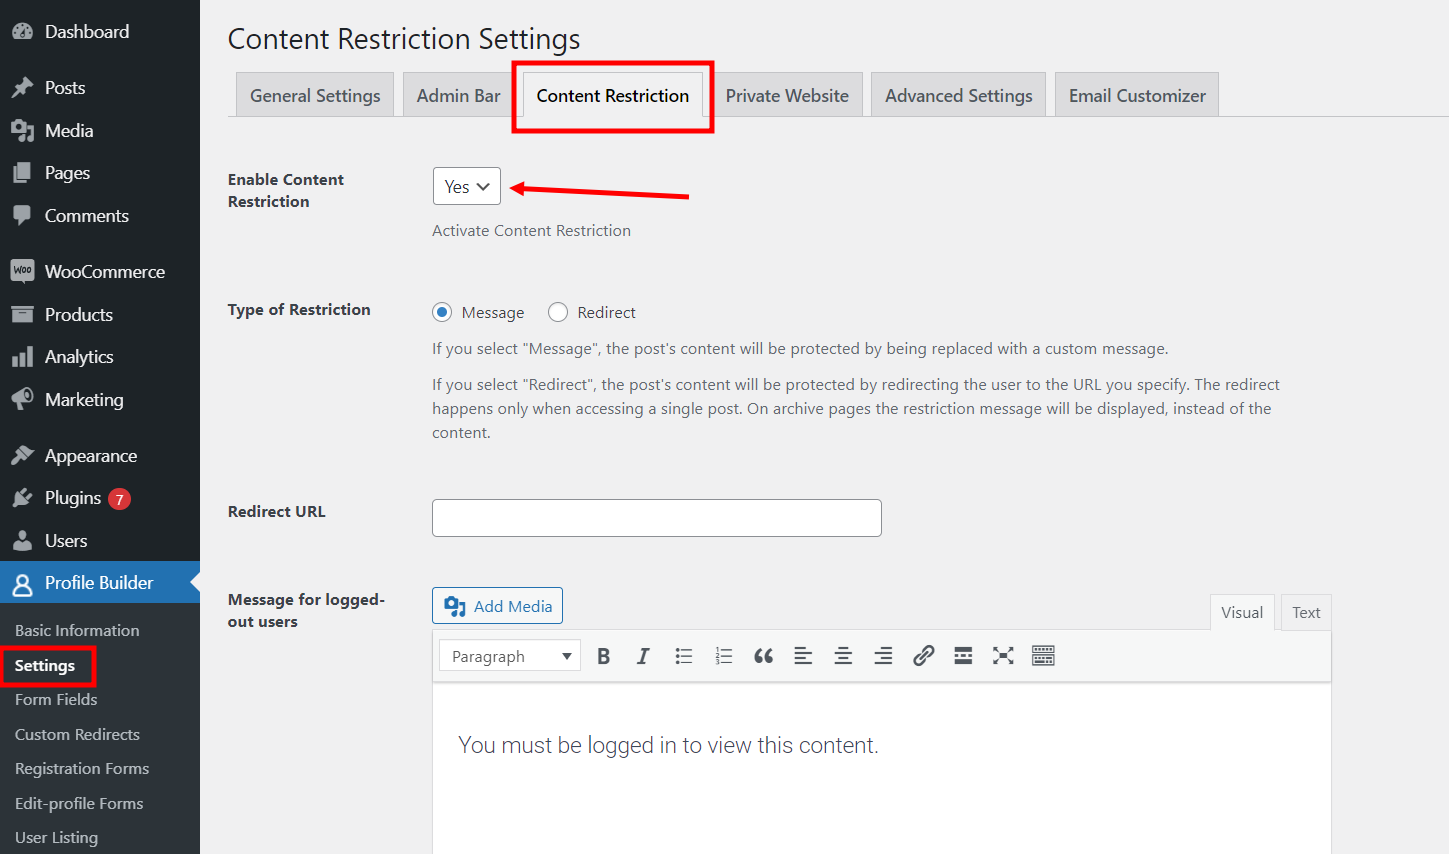 Enabling content restrictions